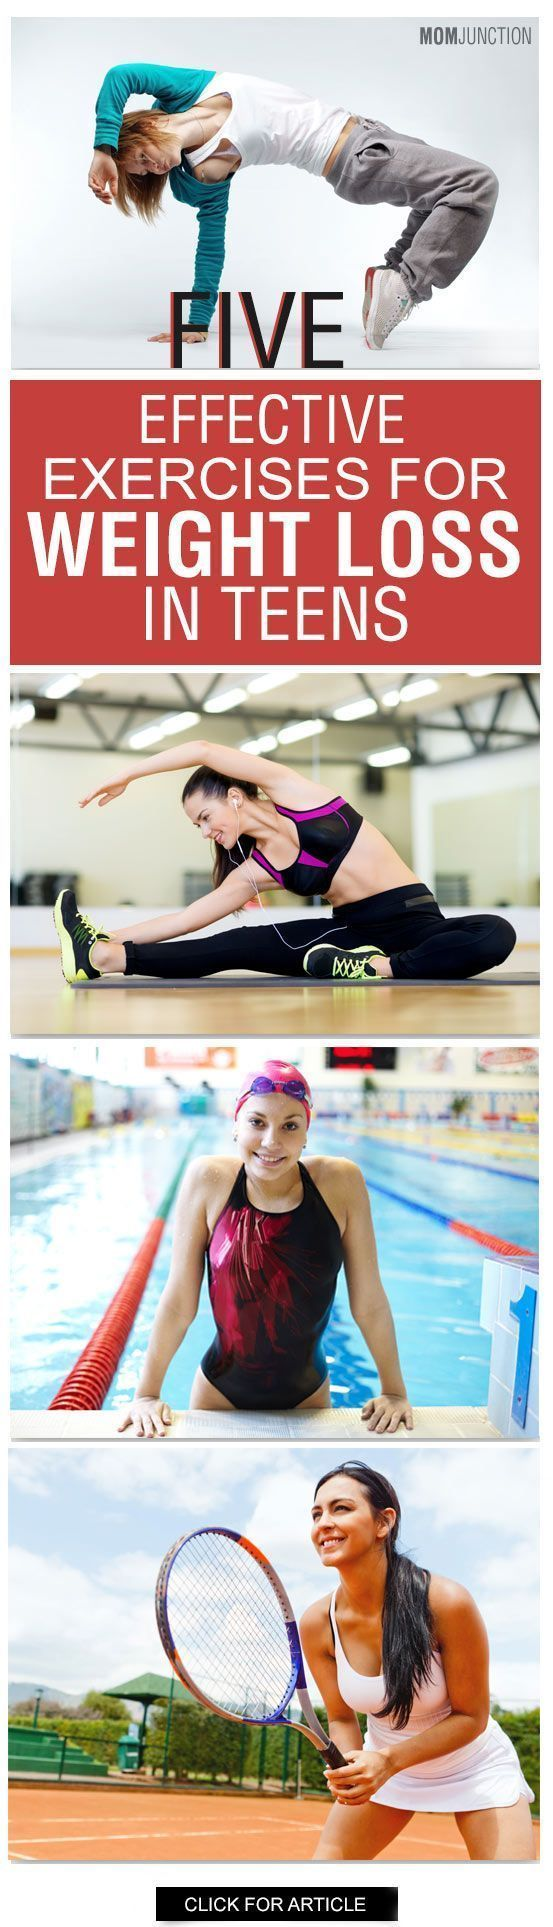 7 Incredible benefits of regular exercise for teens 7 Incredible benefits of regular exercise for teens